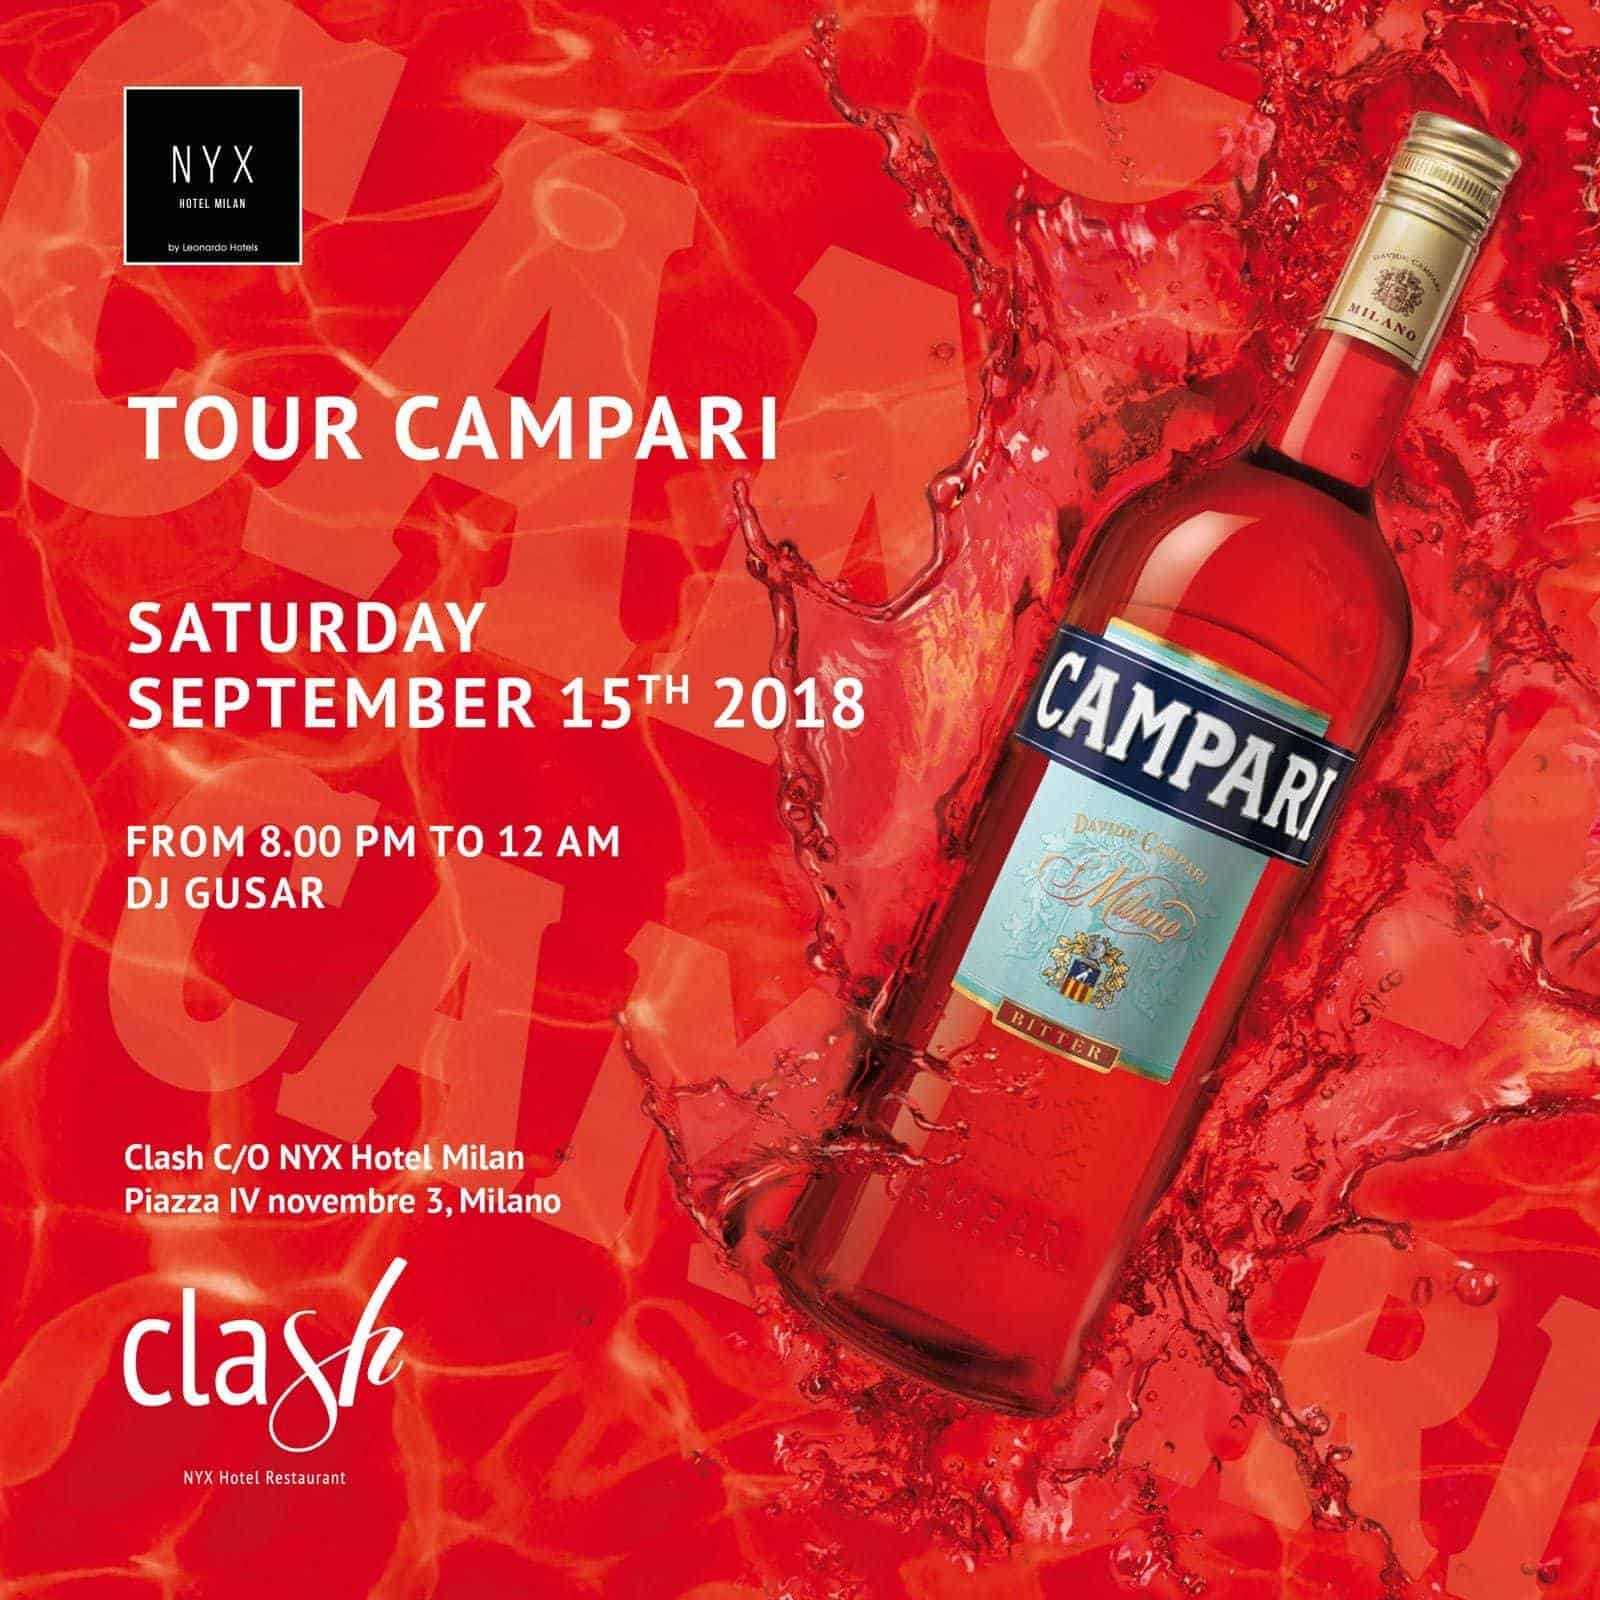 Campari Cocktail Party | Giardino Hotel NYX Milano